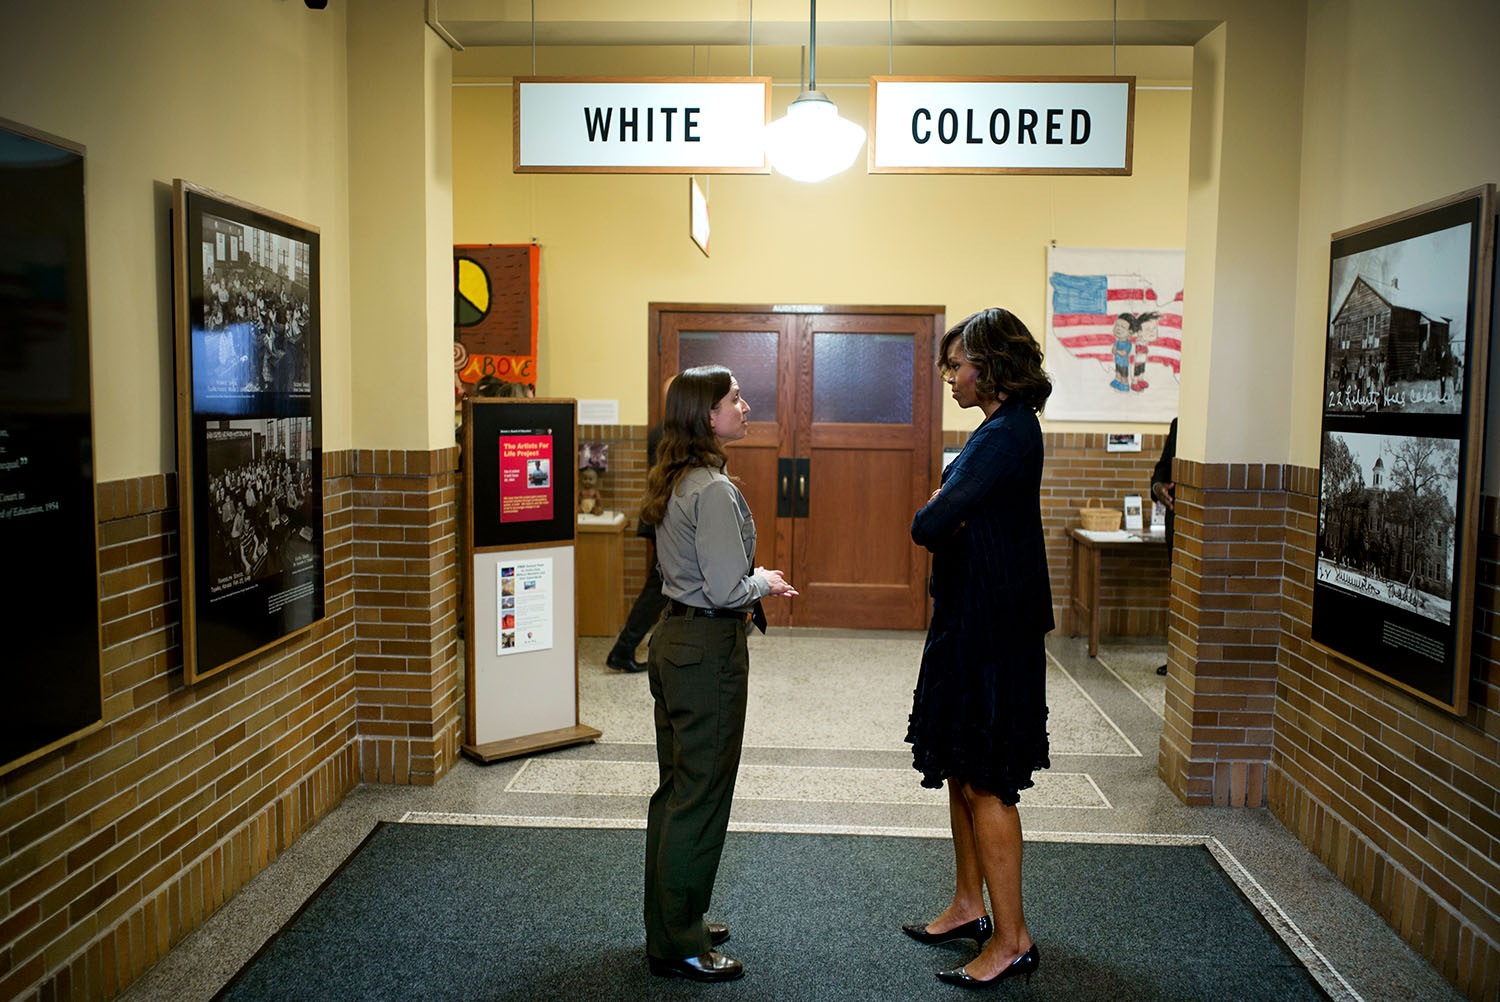 Brown v. Board of Education National Historic Site, American Museum, African American Museums, African Museums, Cultural Museums, KINDR'D Magazine, KINDR'D